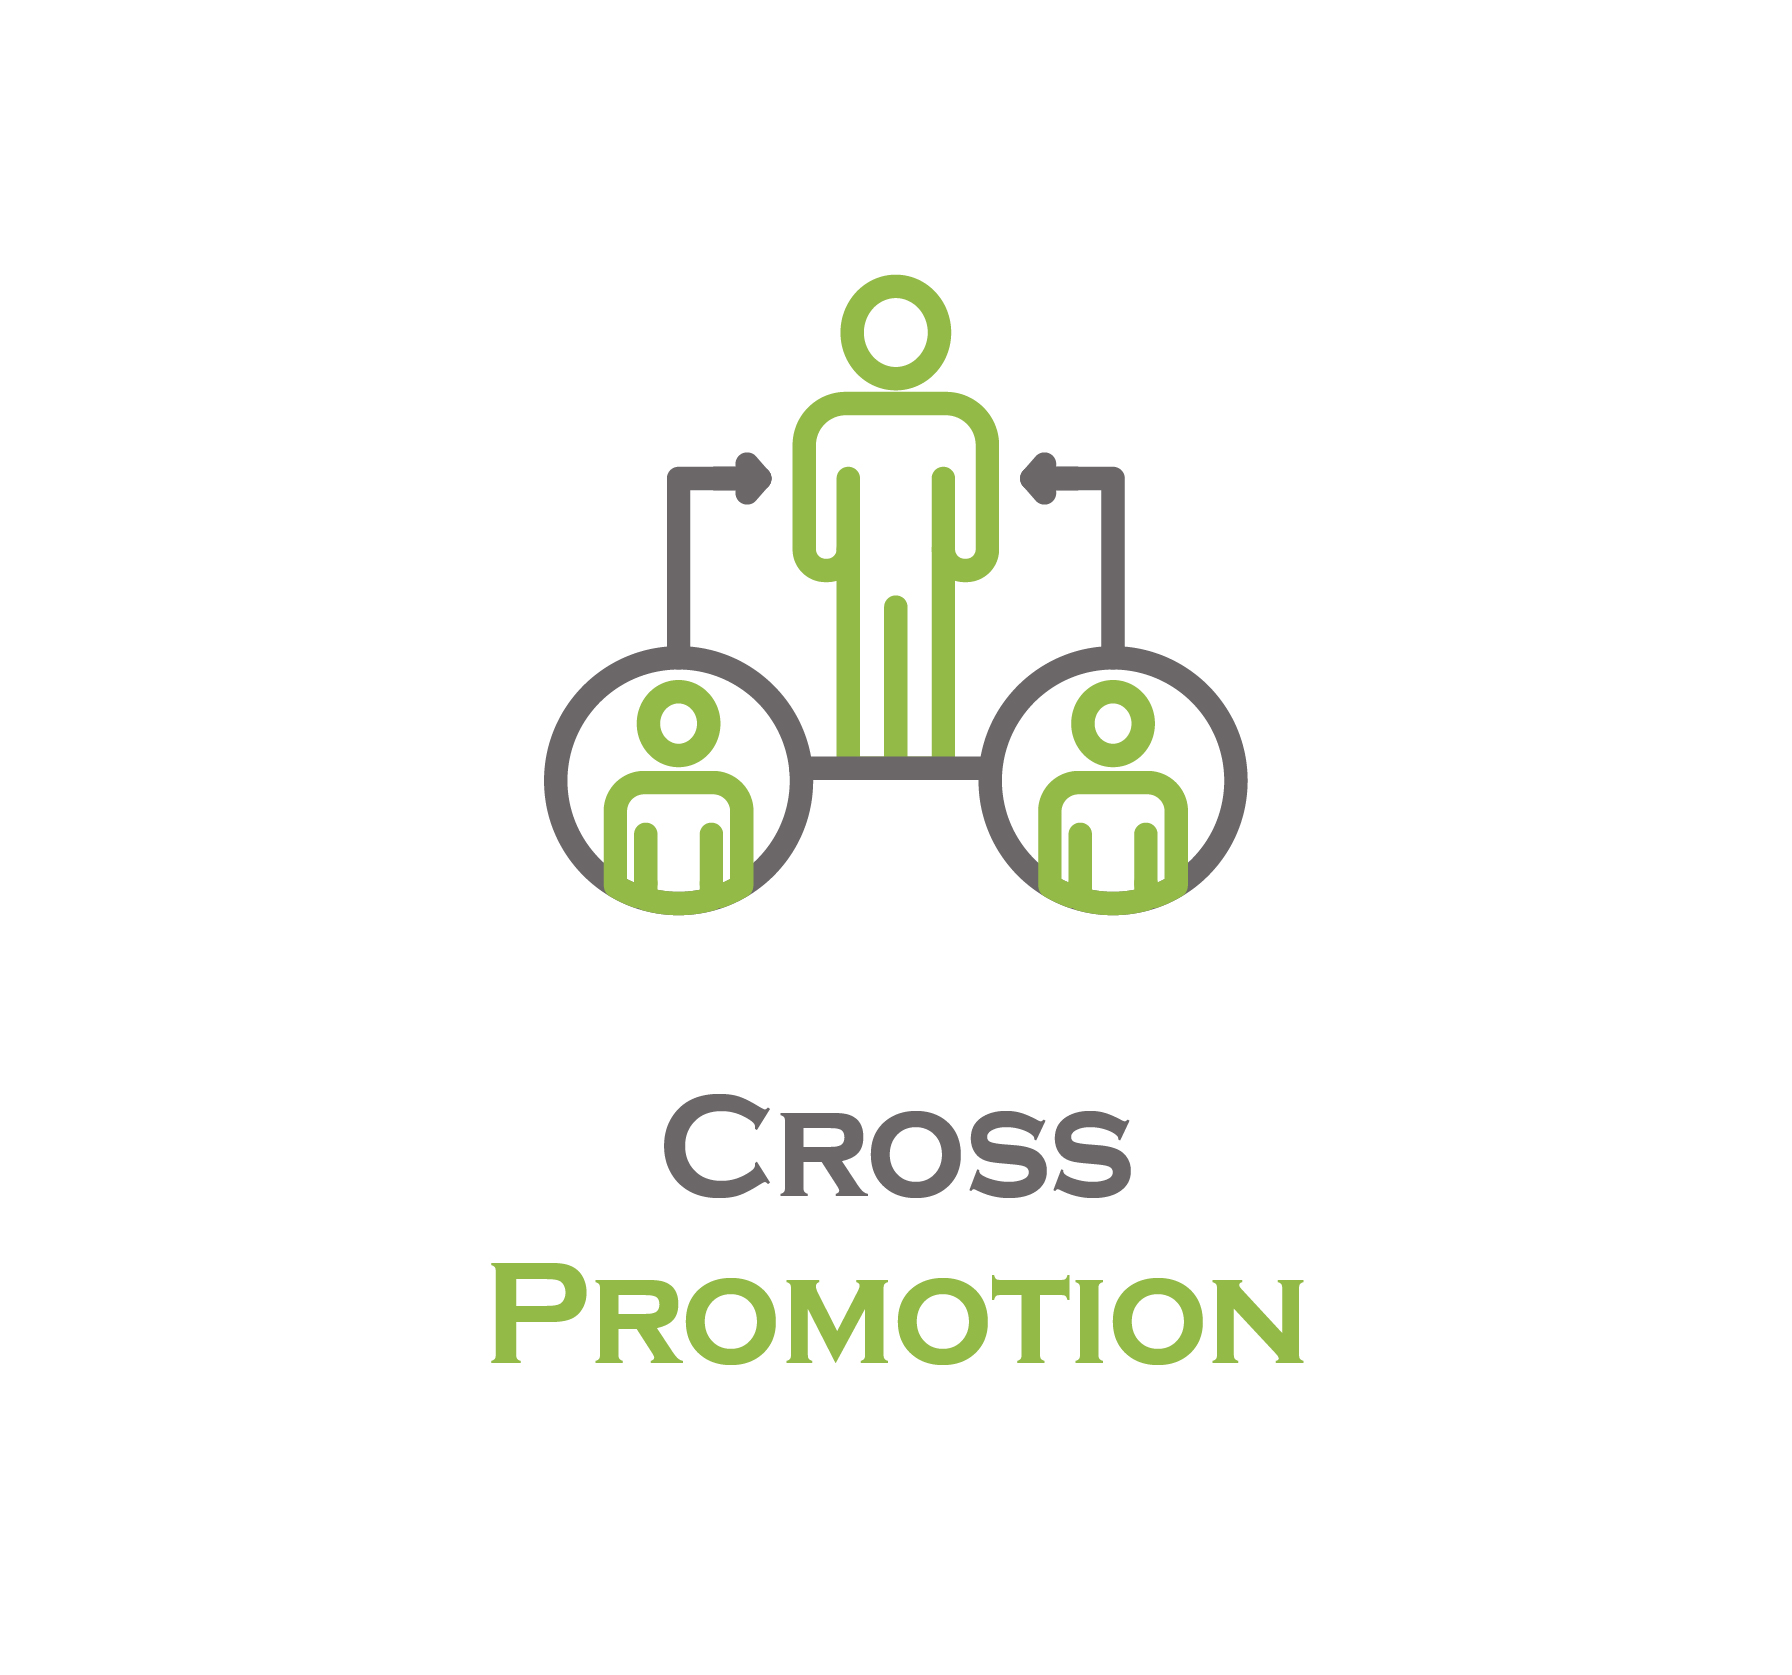 Cross Promotion